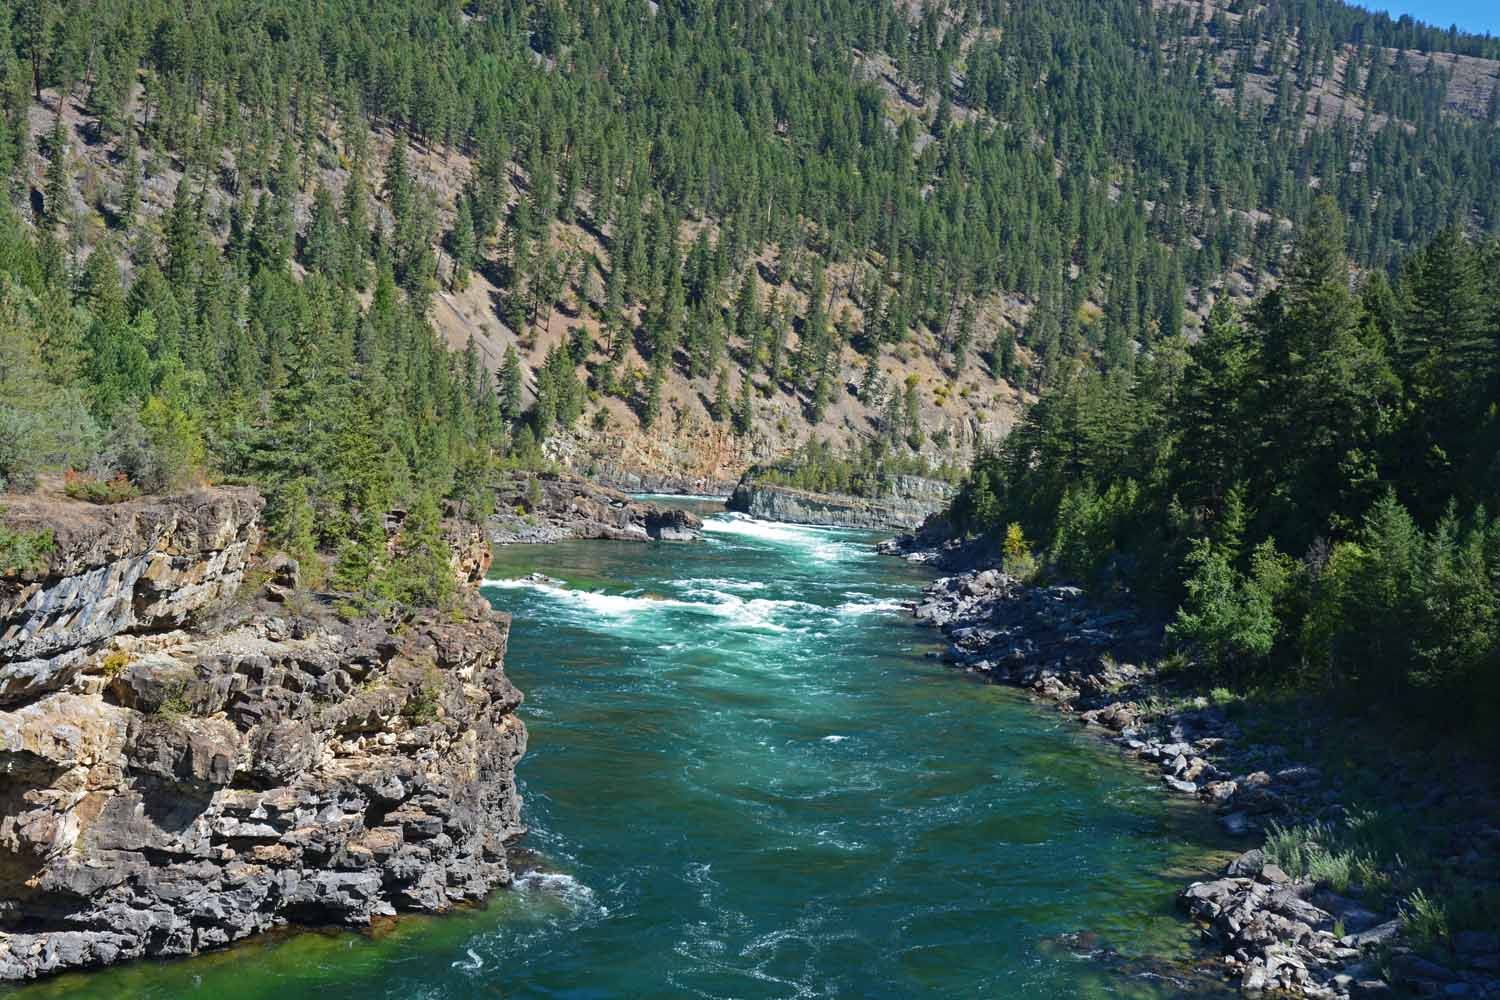 Kootenai River comes cown from Canada.  The water is still blue green.